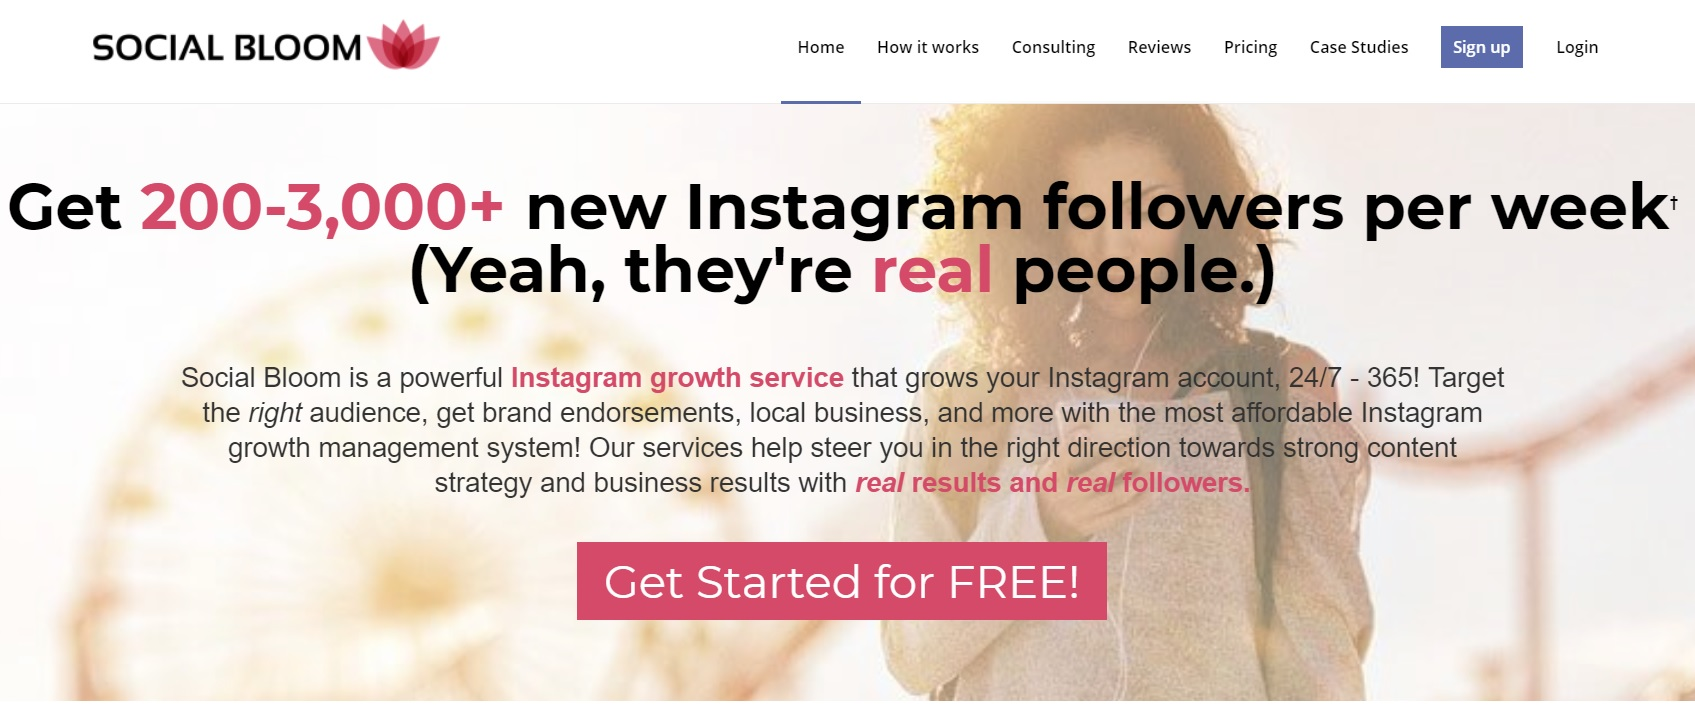 Top 5 Best Instagram Automation Software & Tools of 2018 [Verified]